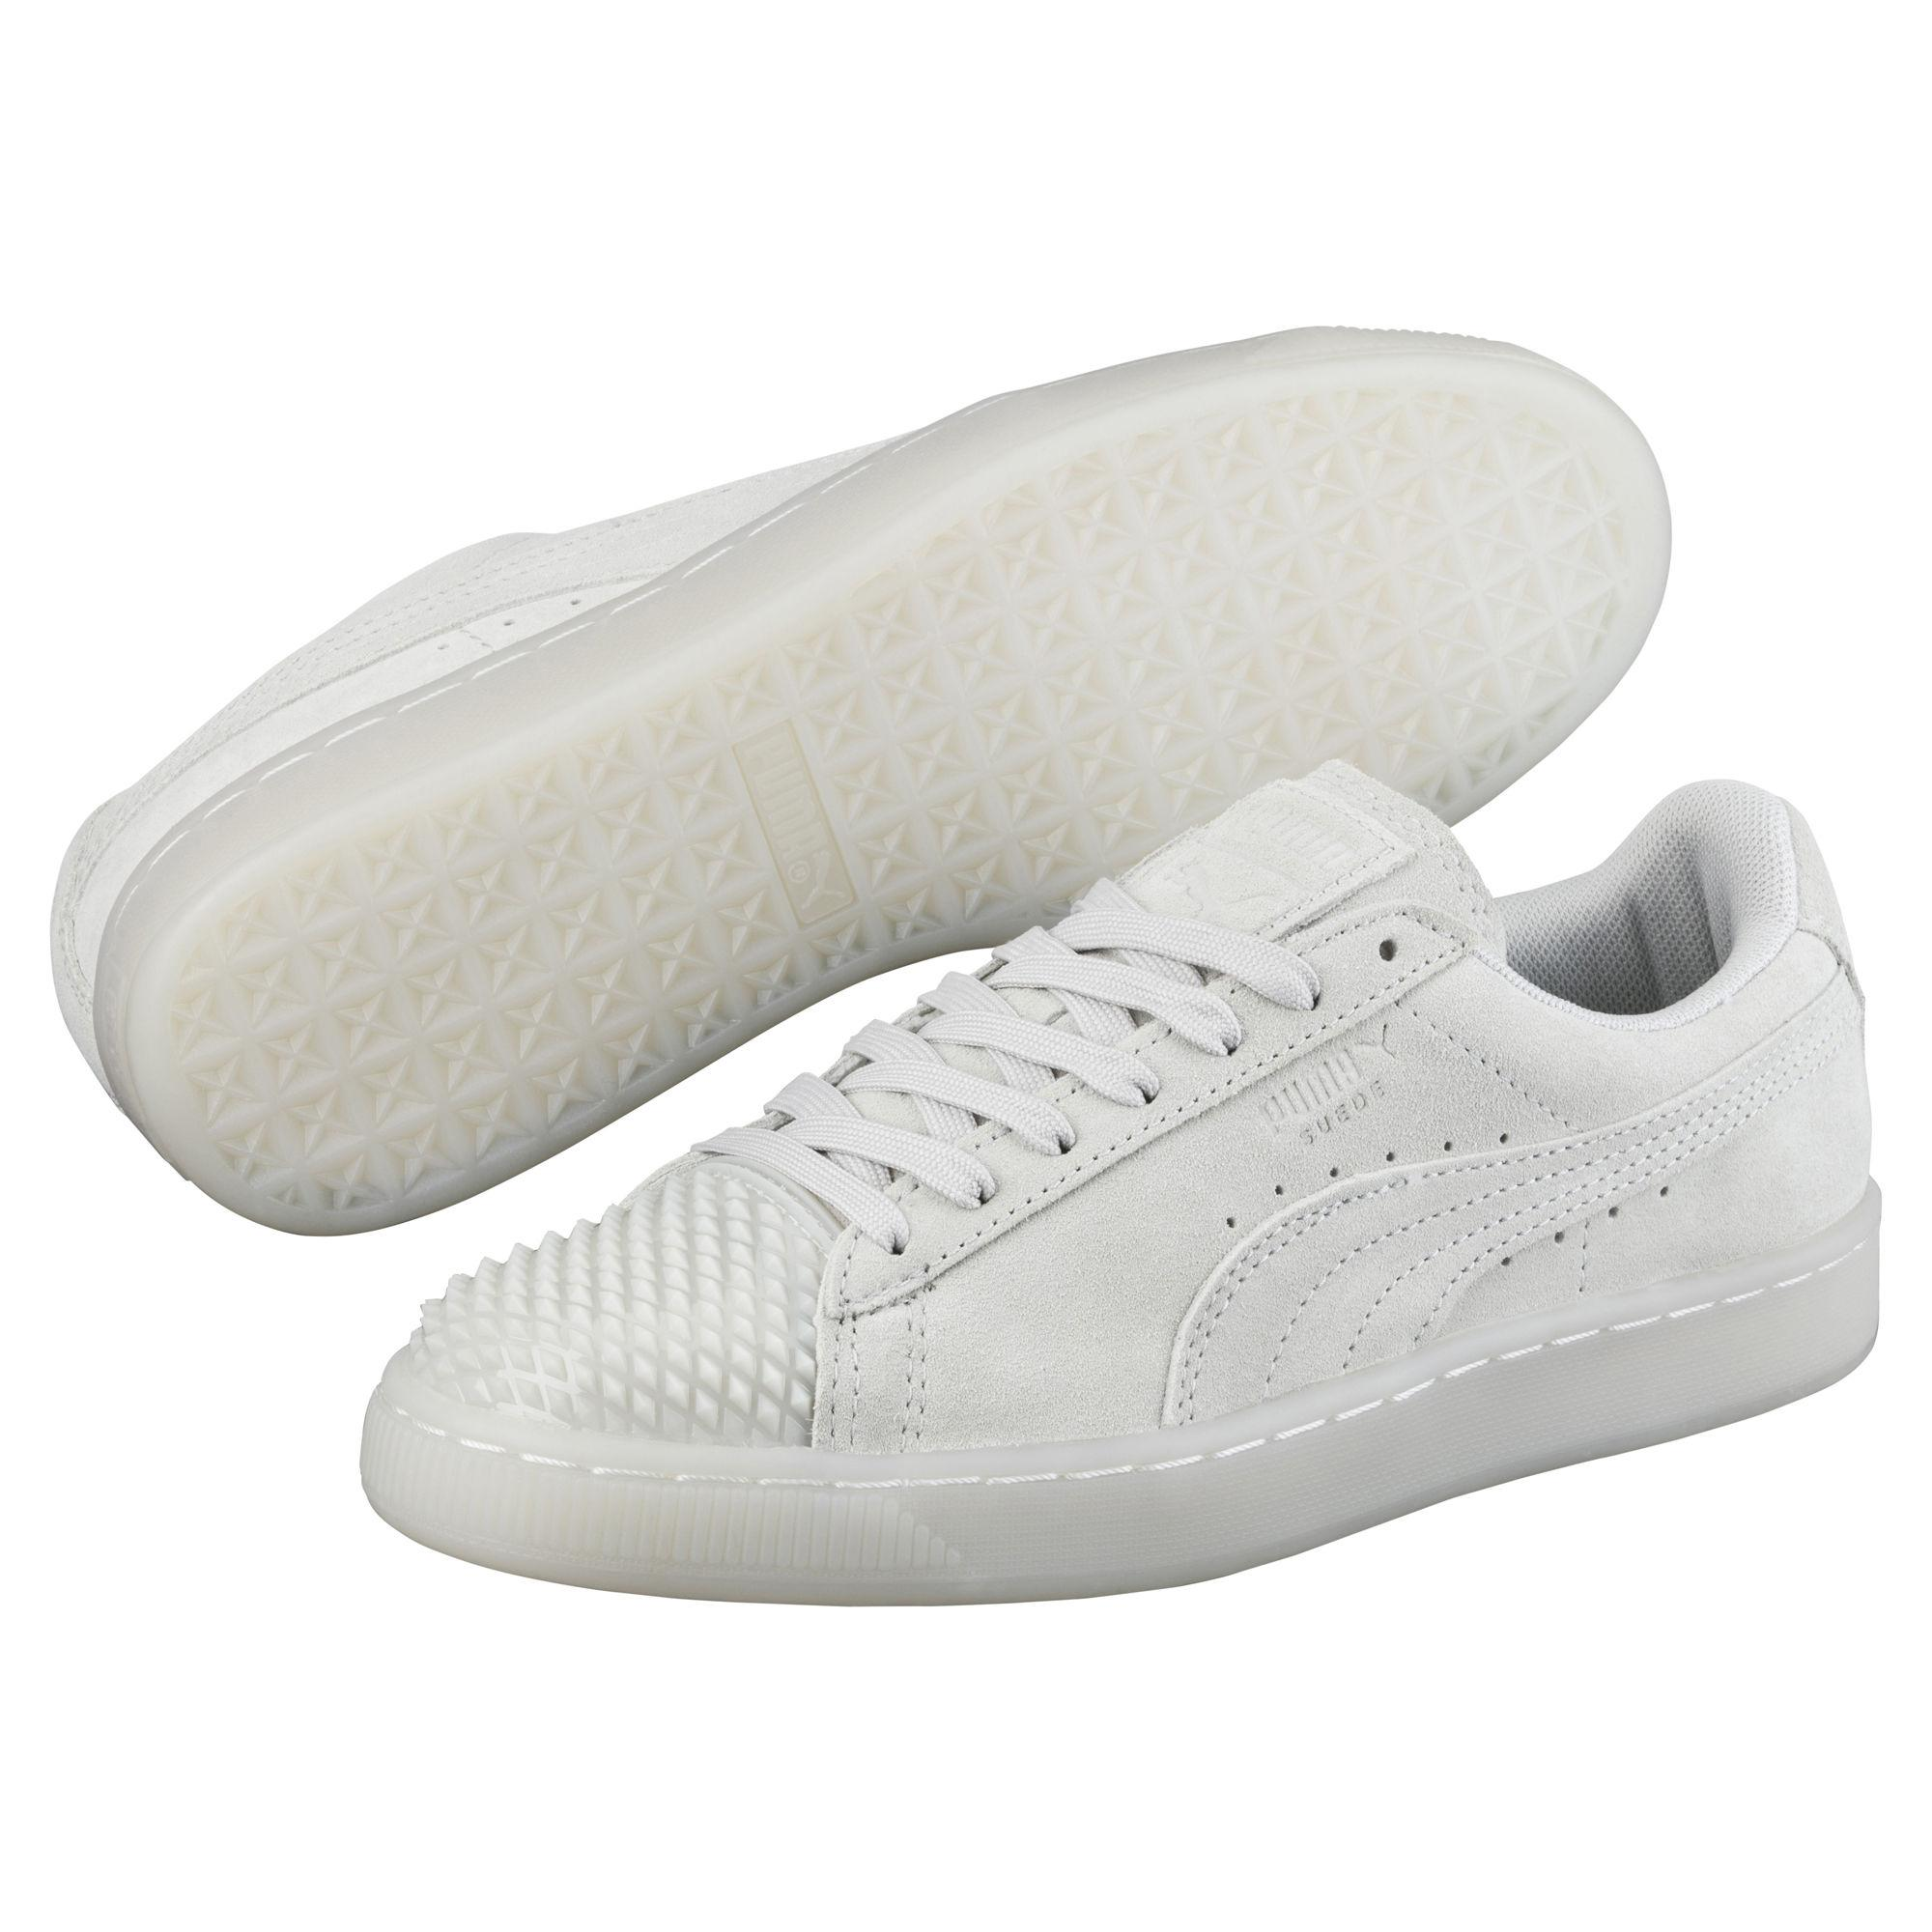 9f8886a0 PUMA Gray Suede Jelly Women's Sneakers